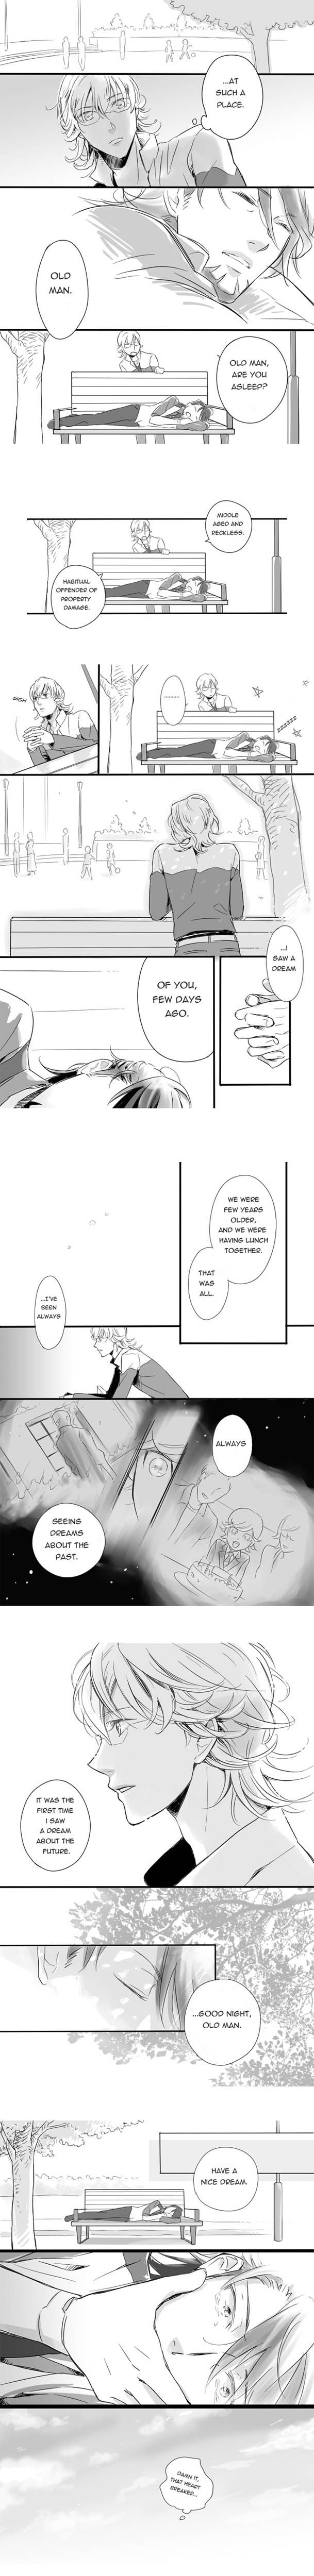 Barnaby and Kotetsu. T_T This is so sad and so sweet at the same time! - Tiger and Bunny